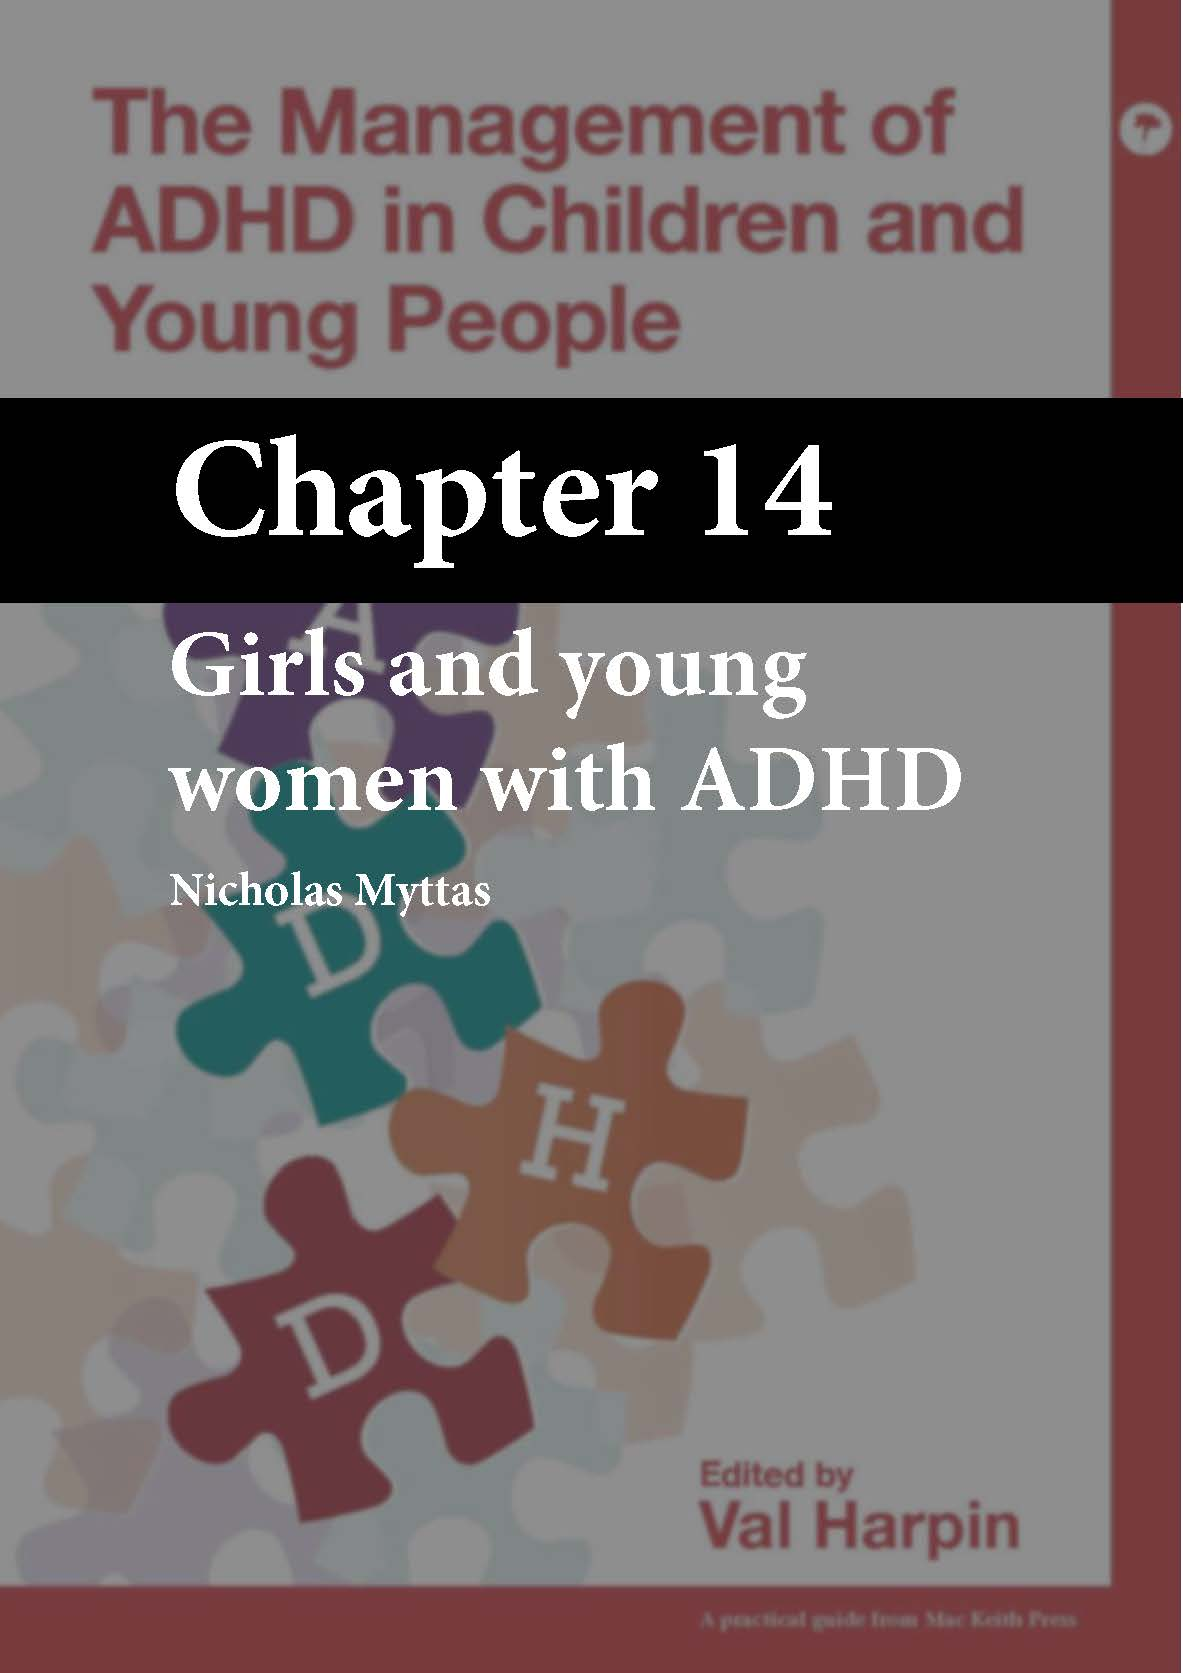 The Management of ADHD in Children and Young People, Harpin, Chapter 14 cover